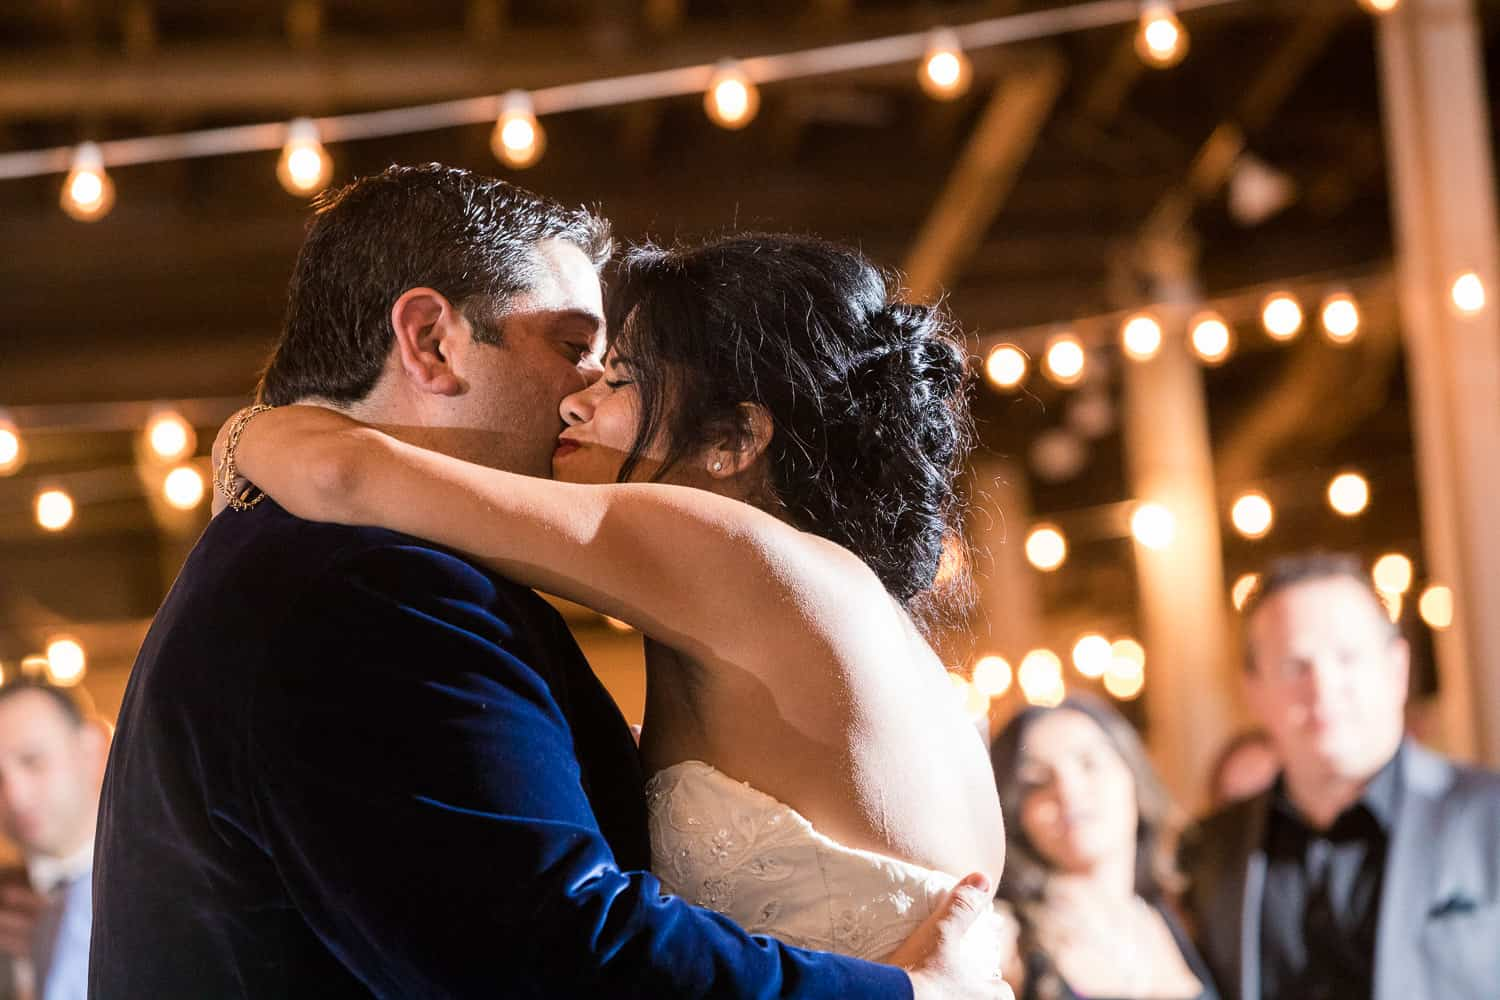 Rosemary and AJ share their first dance at the Arbor Loft wedding.